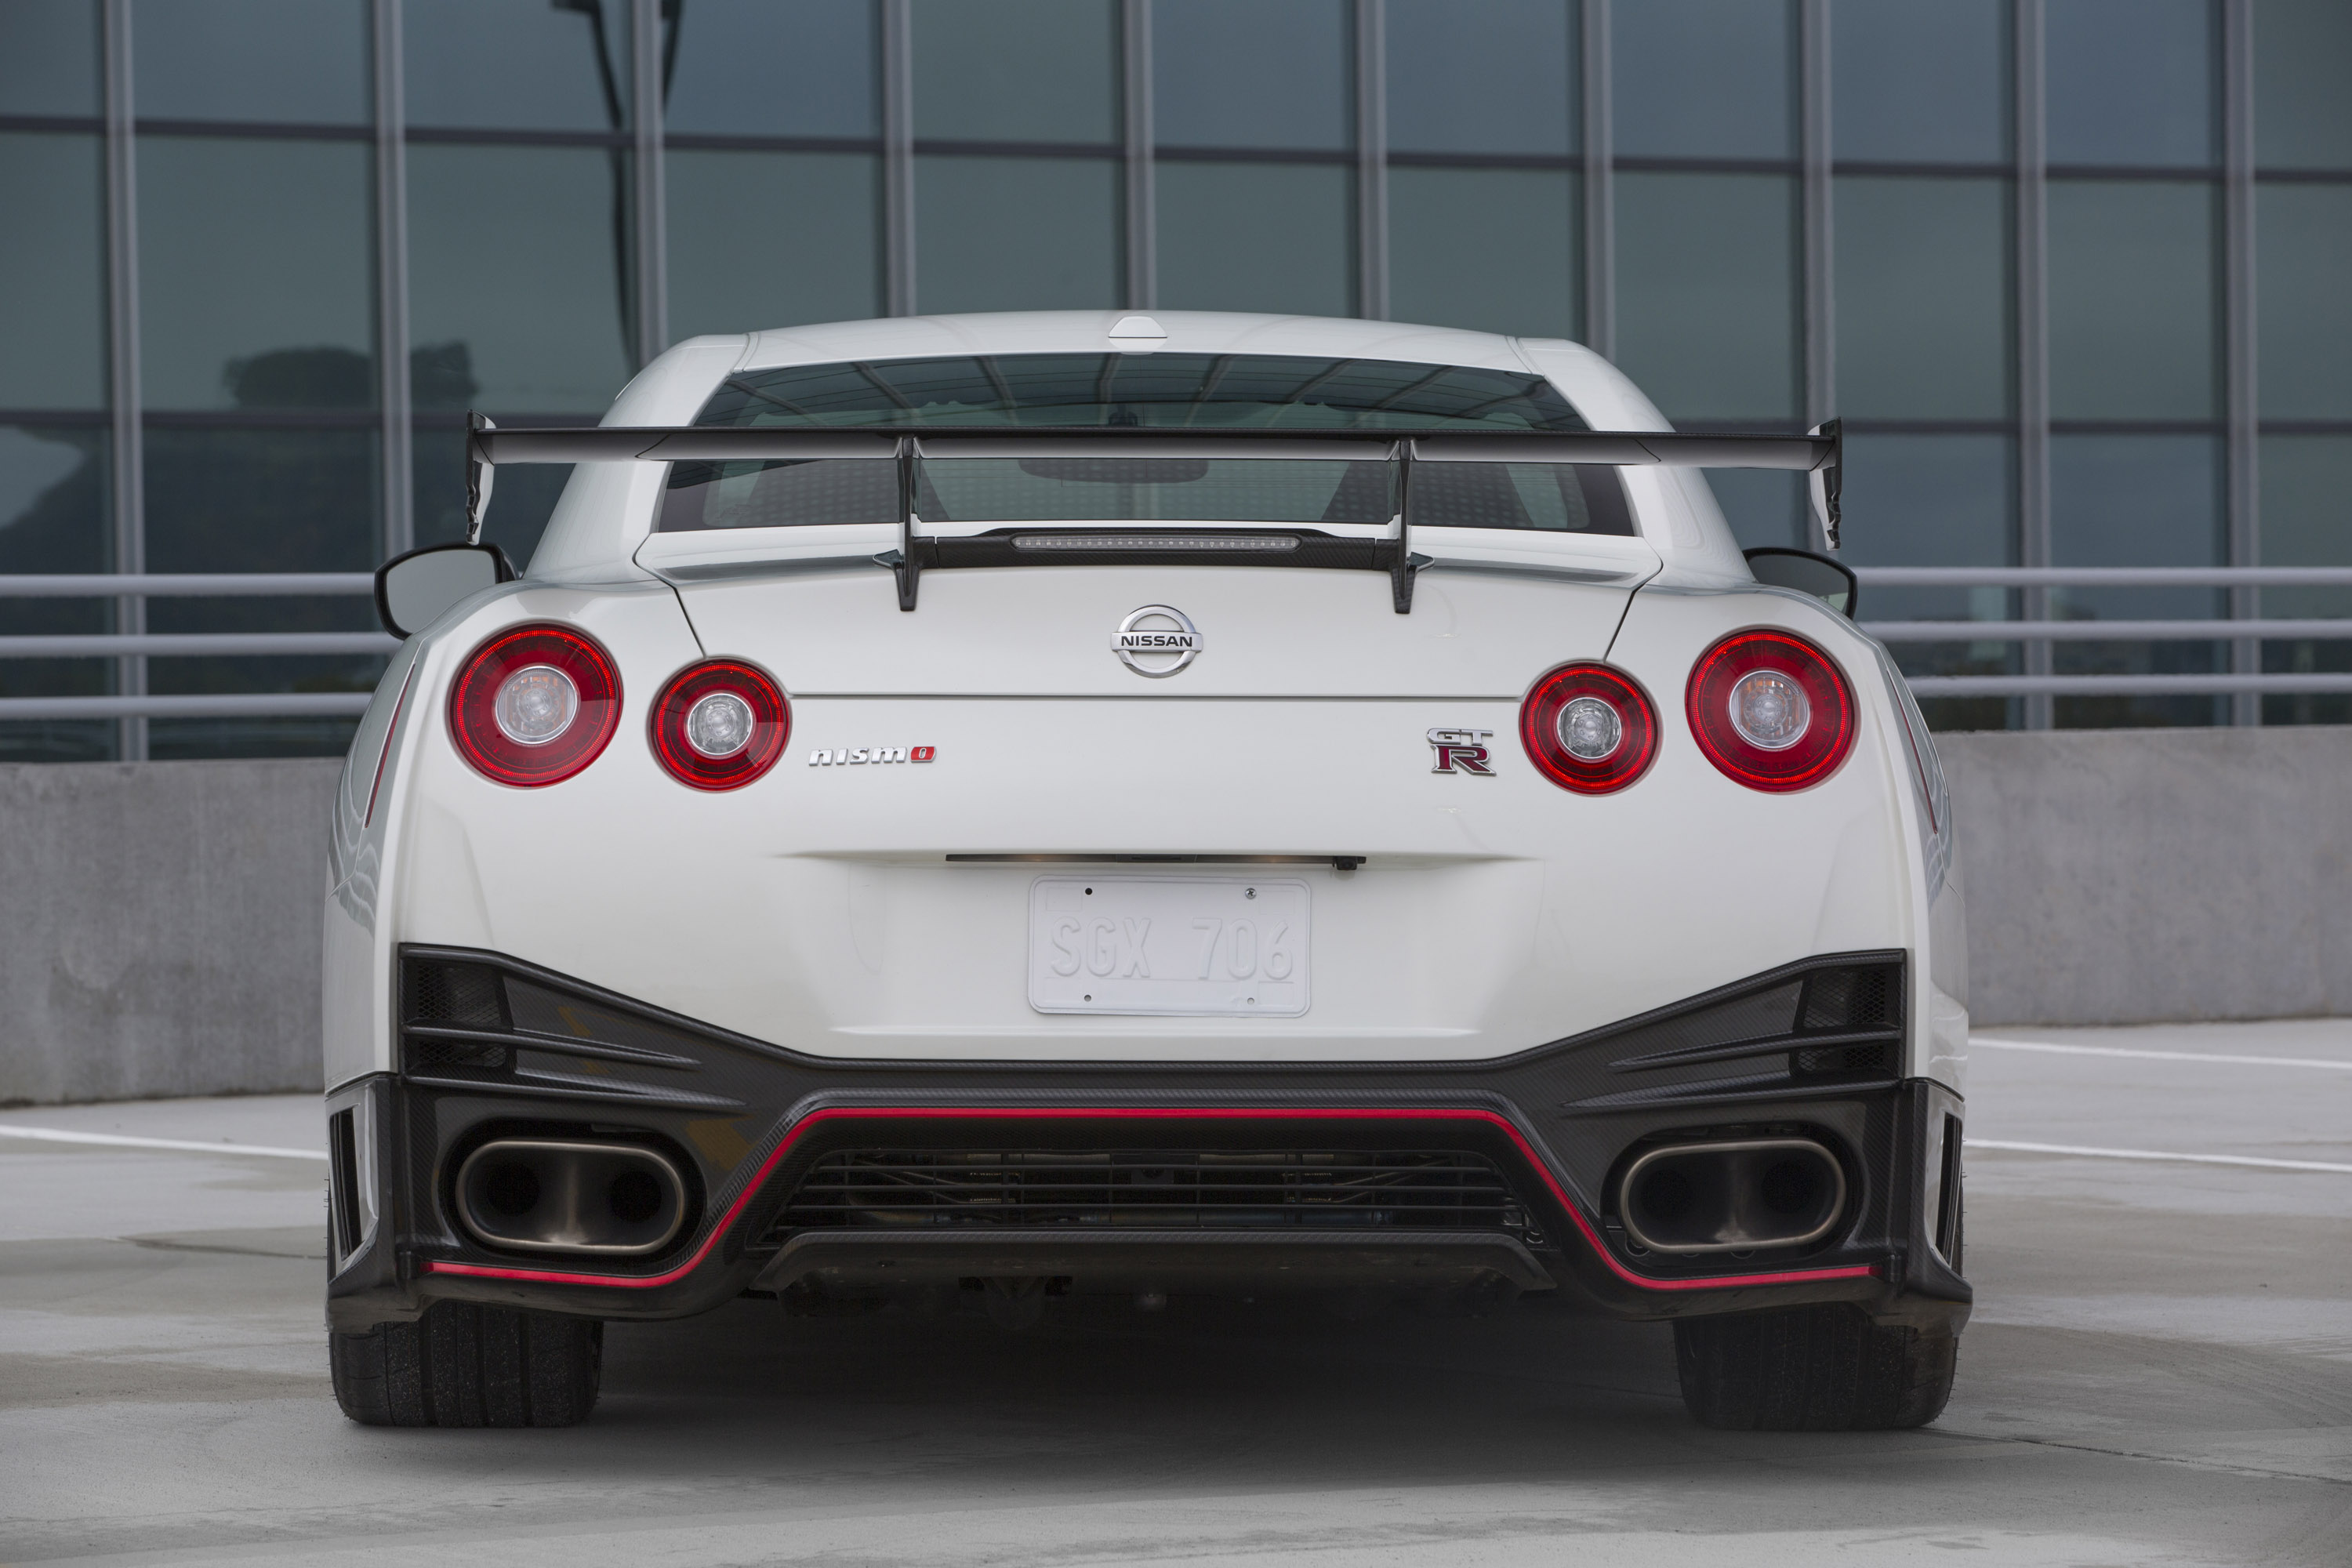 2015 Gt R Nismo And 370z Nismo Safety Car On Display At